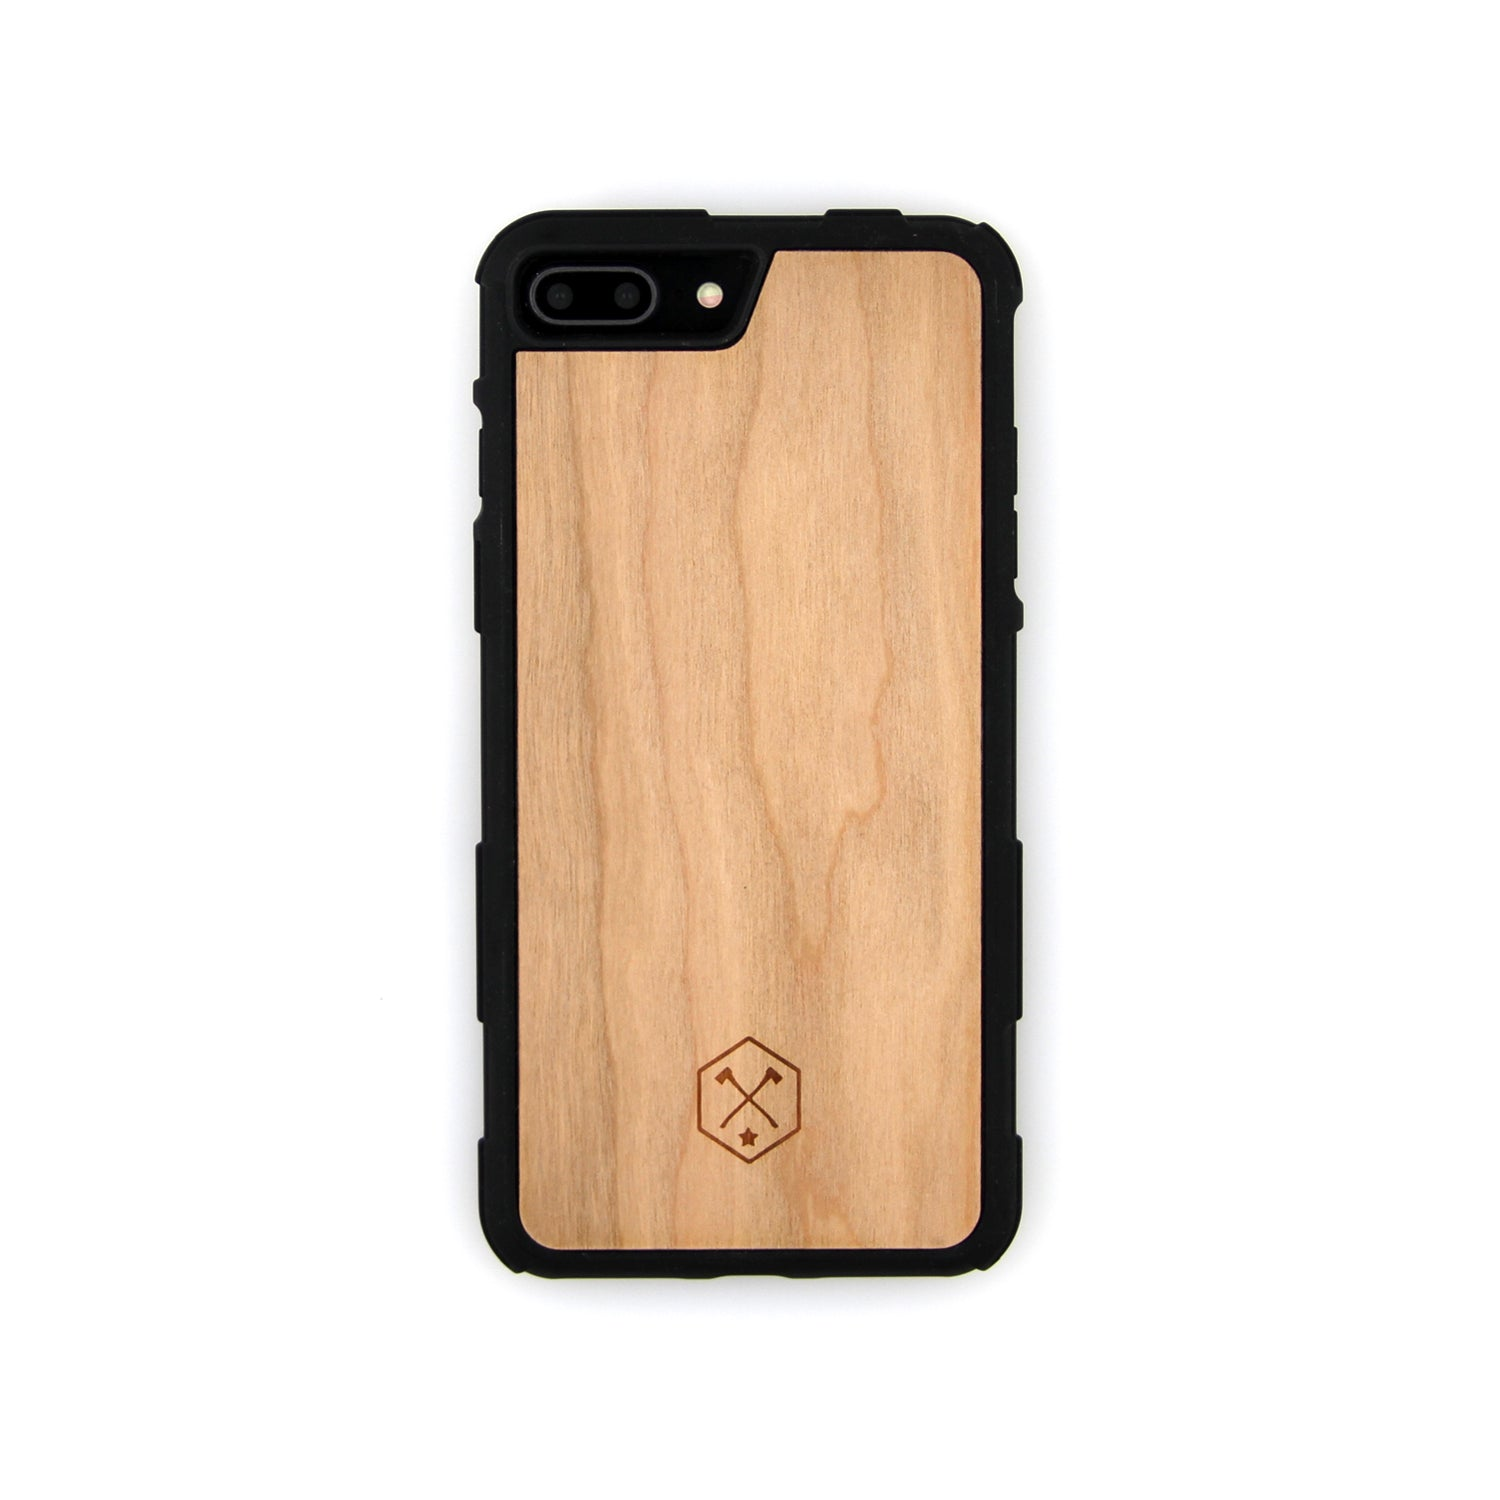 sports shoes 0b10d 0ffc5 TIMBER iPhone 8 Plus Wood Case